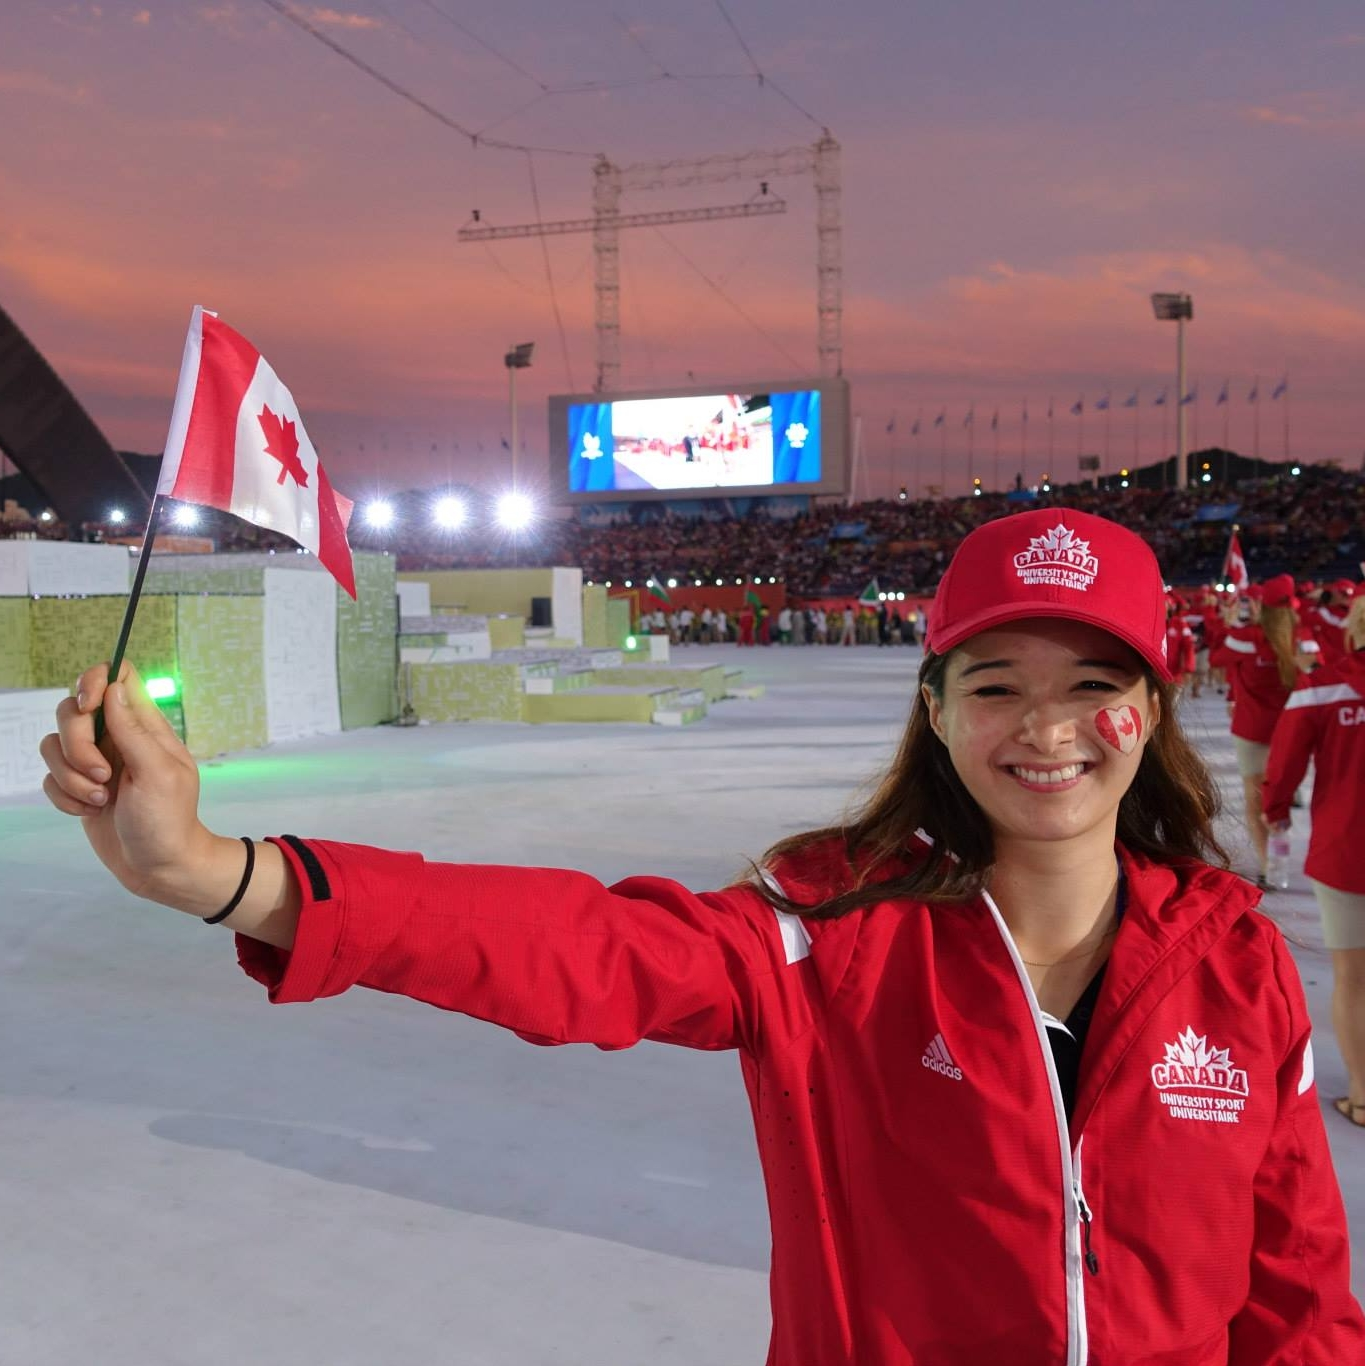 Louise at the opening ceremony of the 2015 University Games in Gwanju, South Korea (during law school). Read about her experience fencing while at law school here :  https://www.canadianlawyermag.com/author/anastasiya-jogal/fencing-through-law-school-2945/